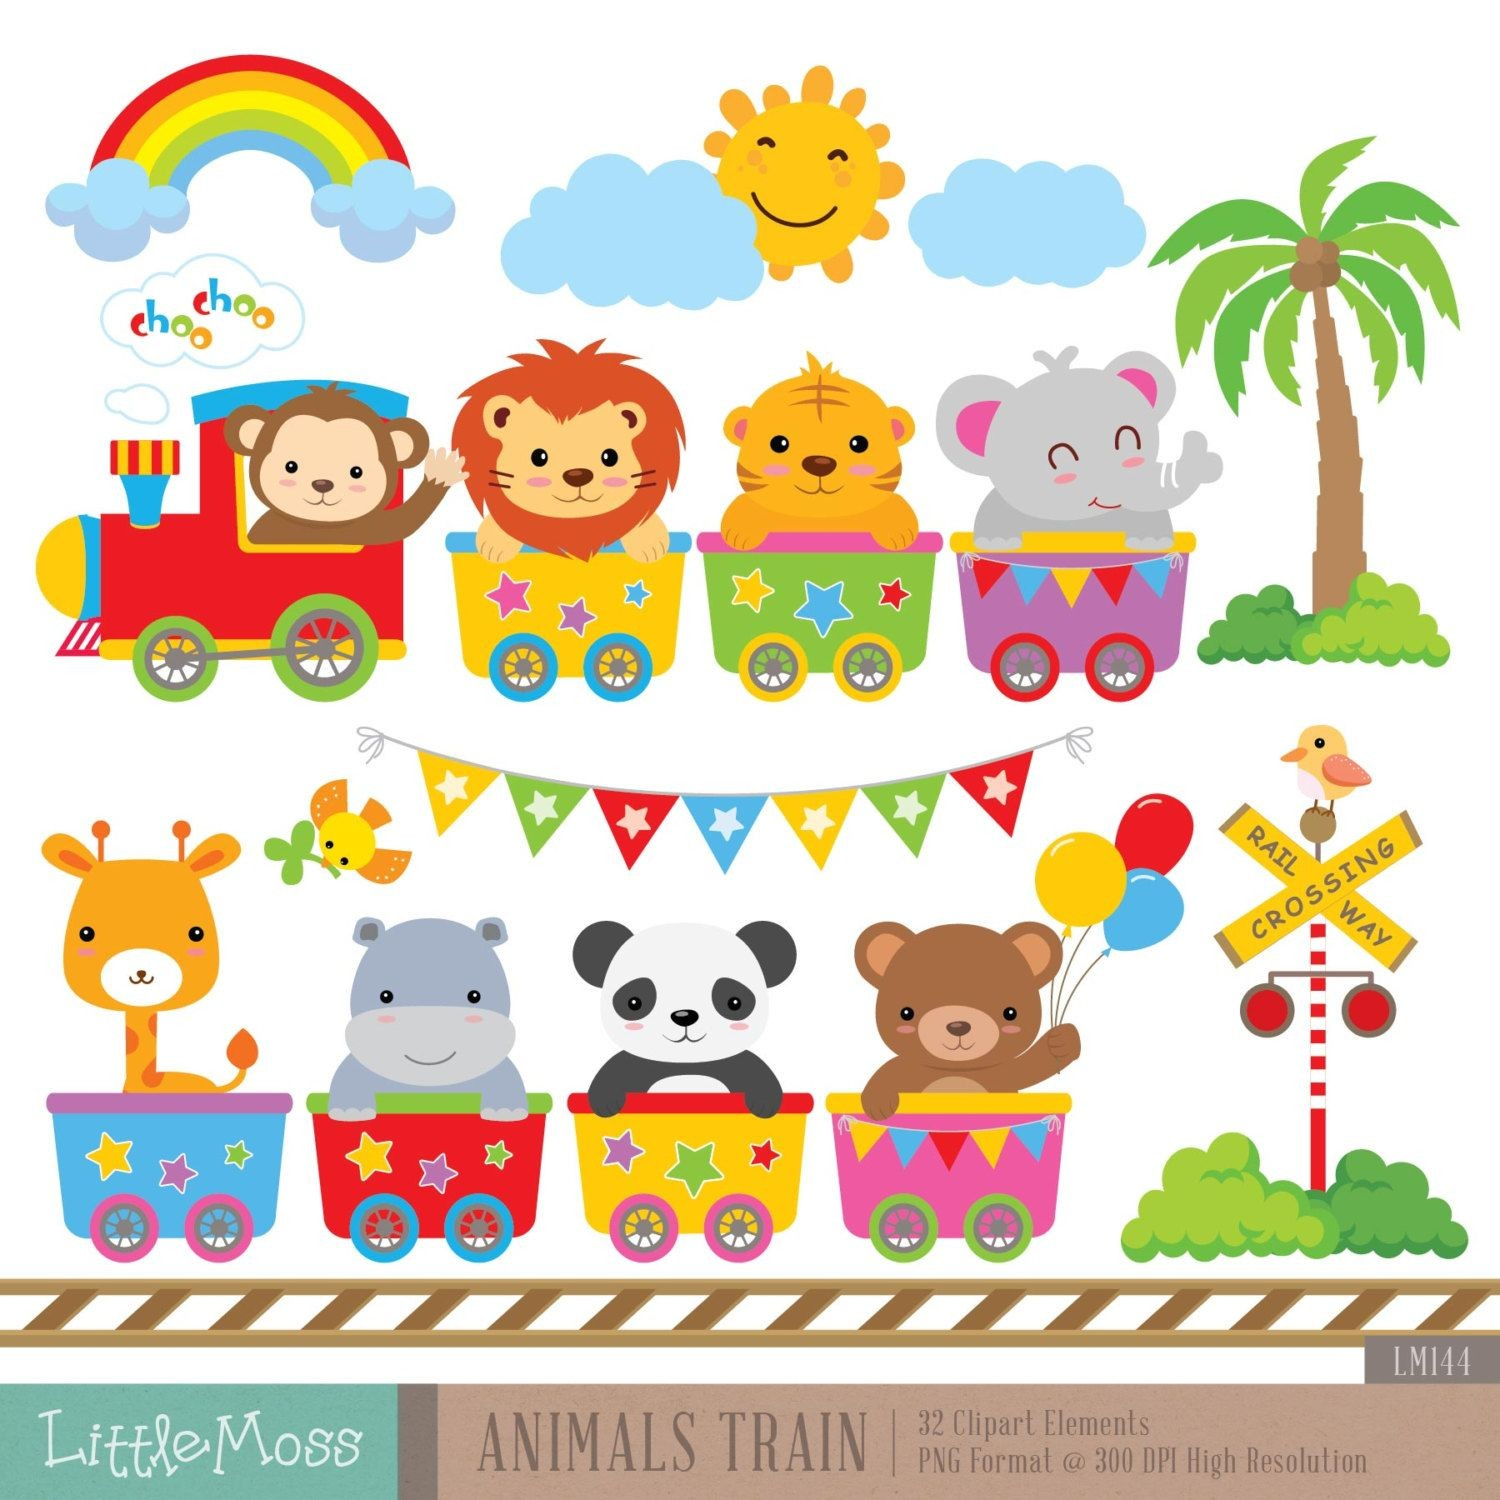 Calendario 2019 Para Imprimir Gratis Bonitos Companeros Más Recientes Wild Animals Train Digital Clipart Educaci³n